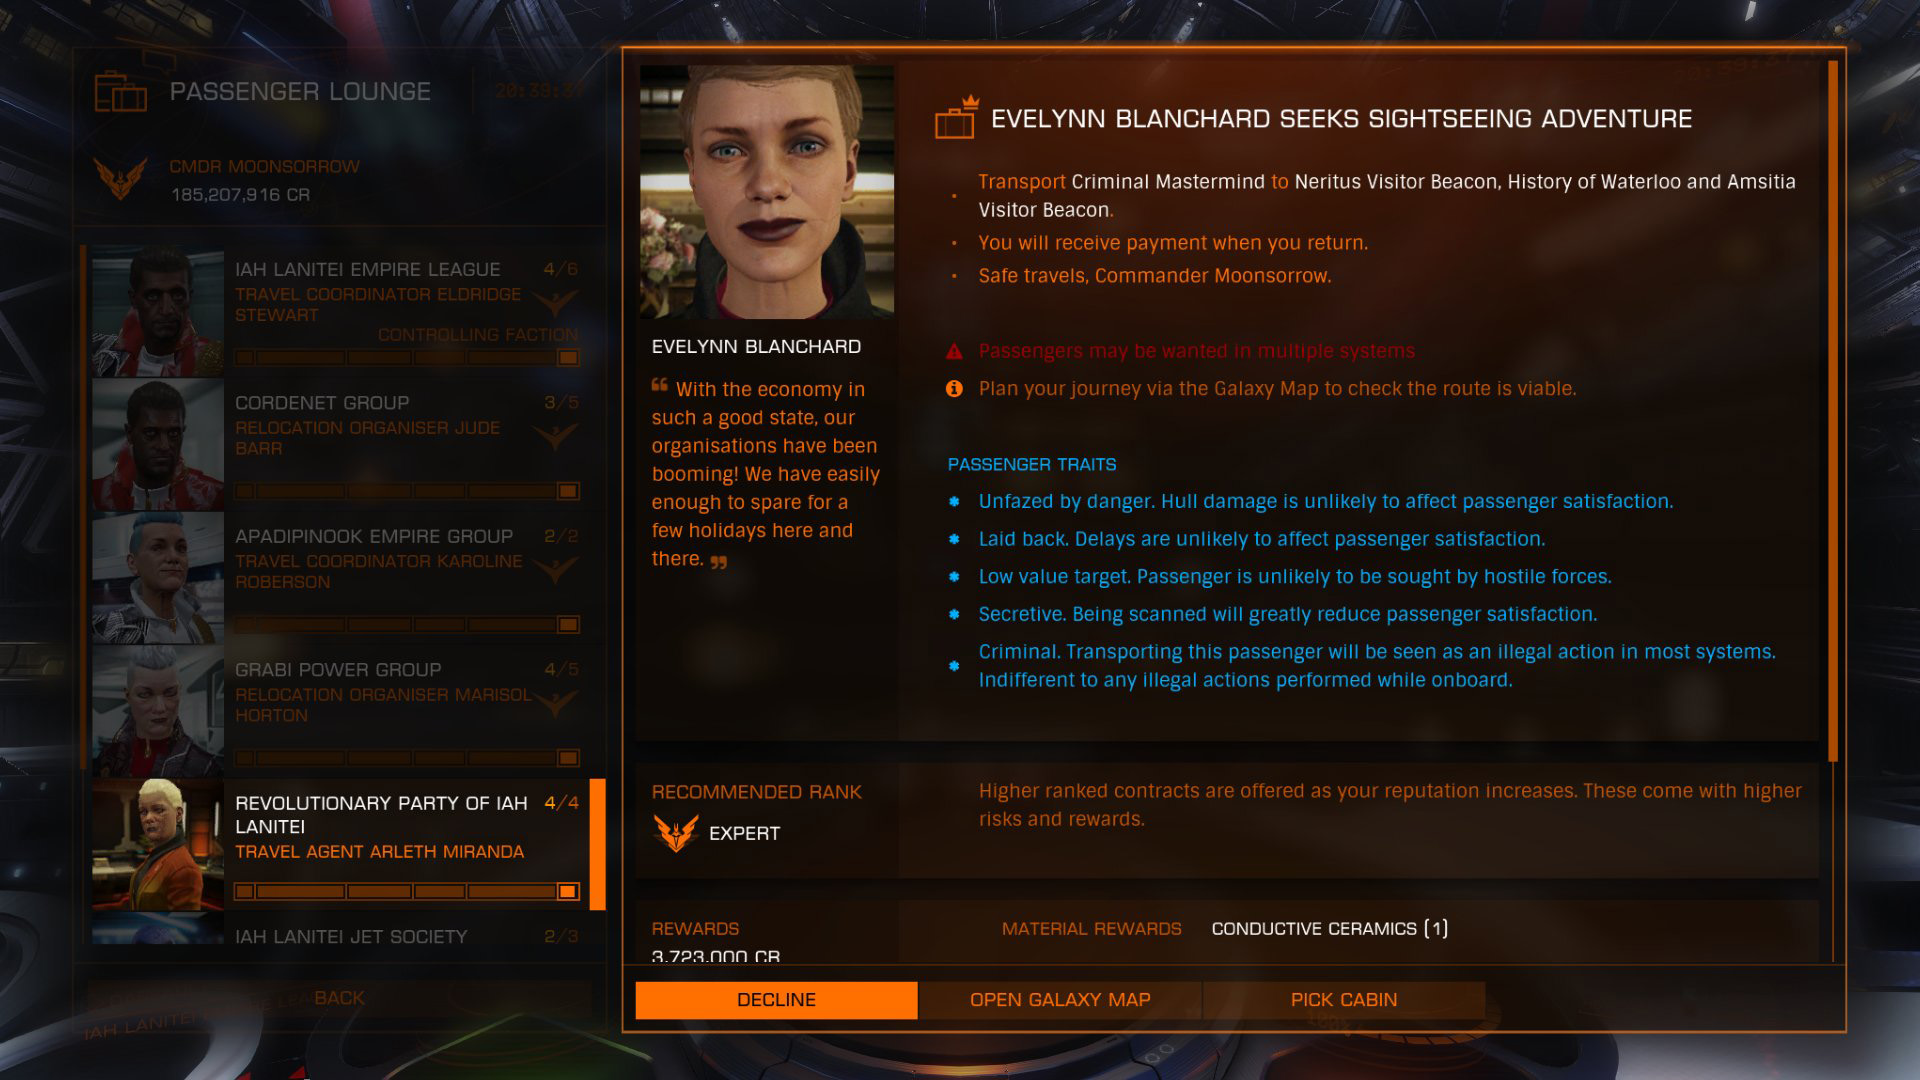 Elite: Dangerous beginner's guide: a screenshot showing a typical passenger mission briefing